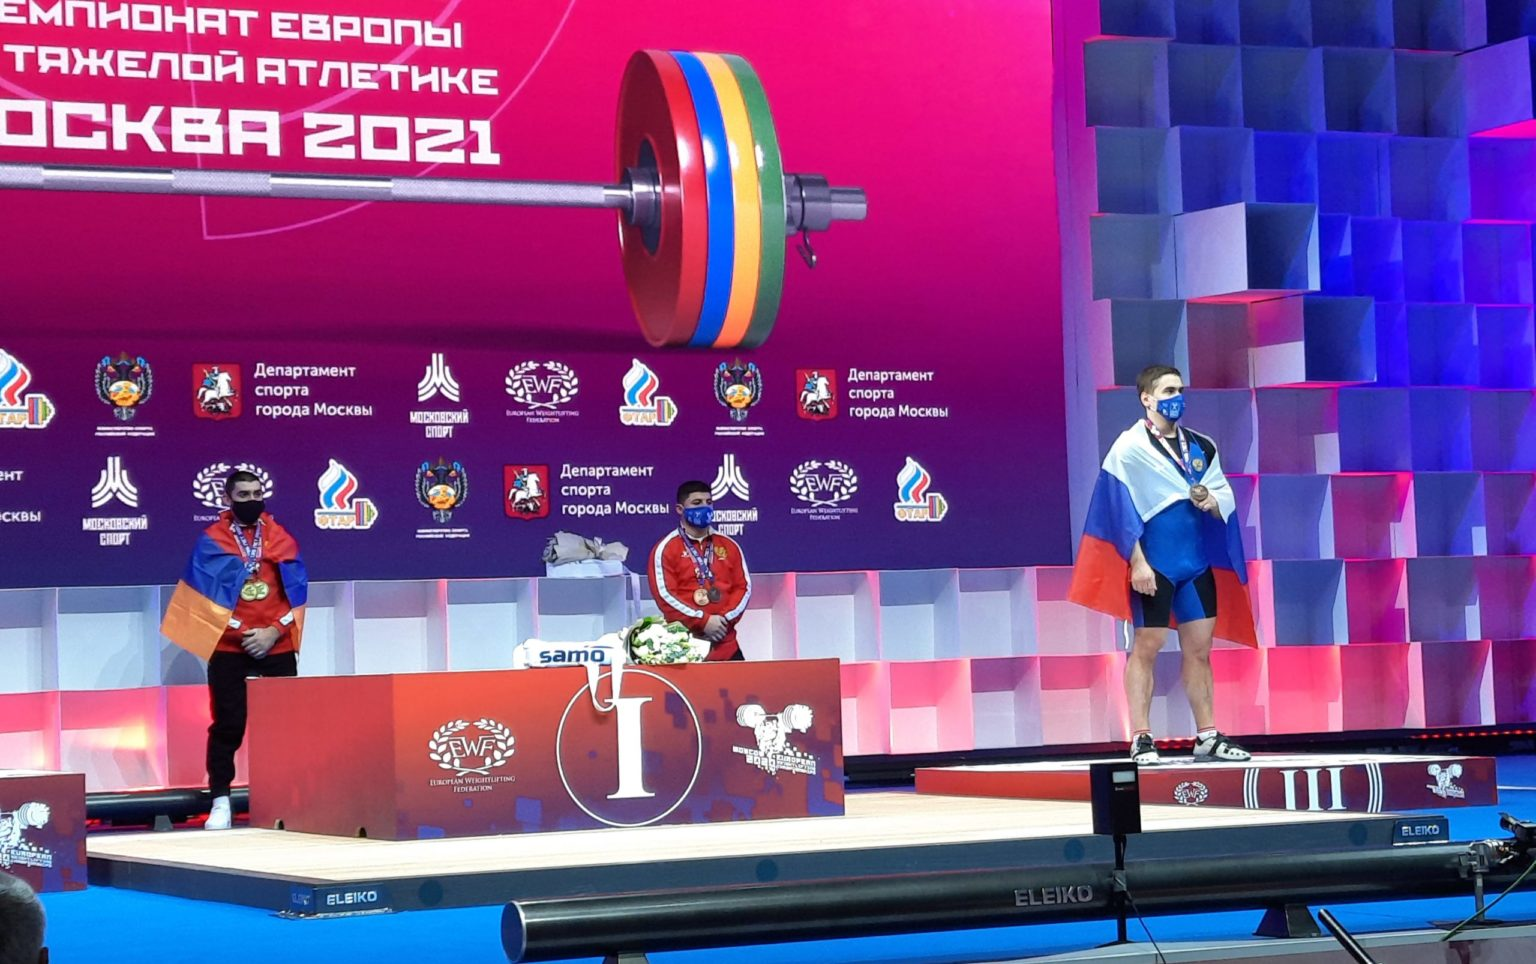 MCU student wins prize at the 2021 European Weightlifting Championships